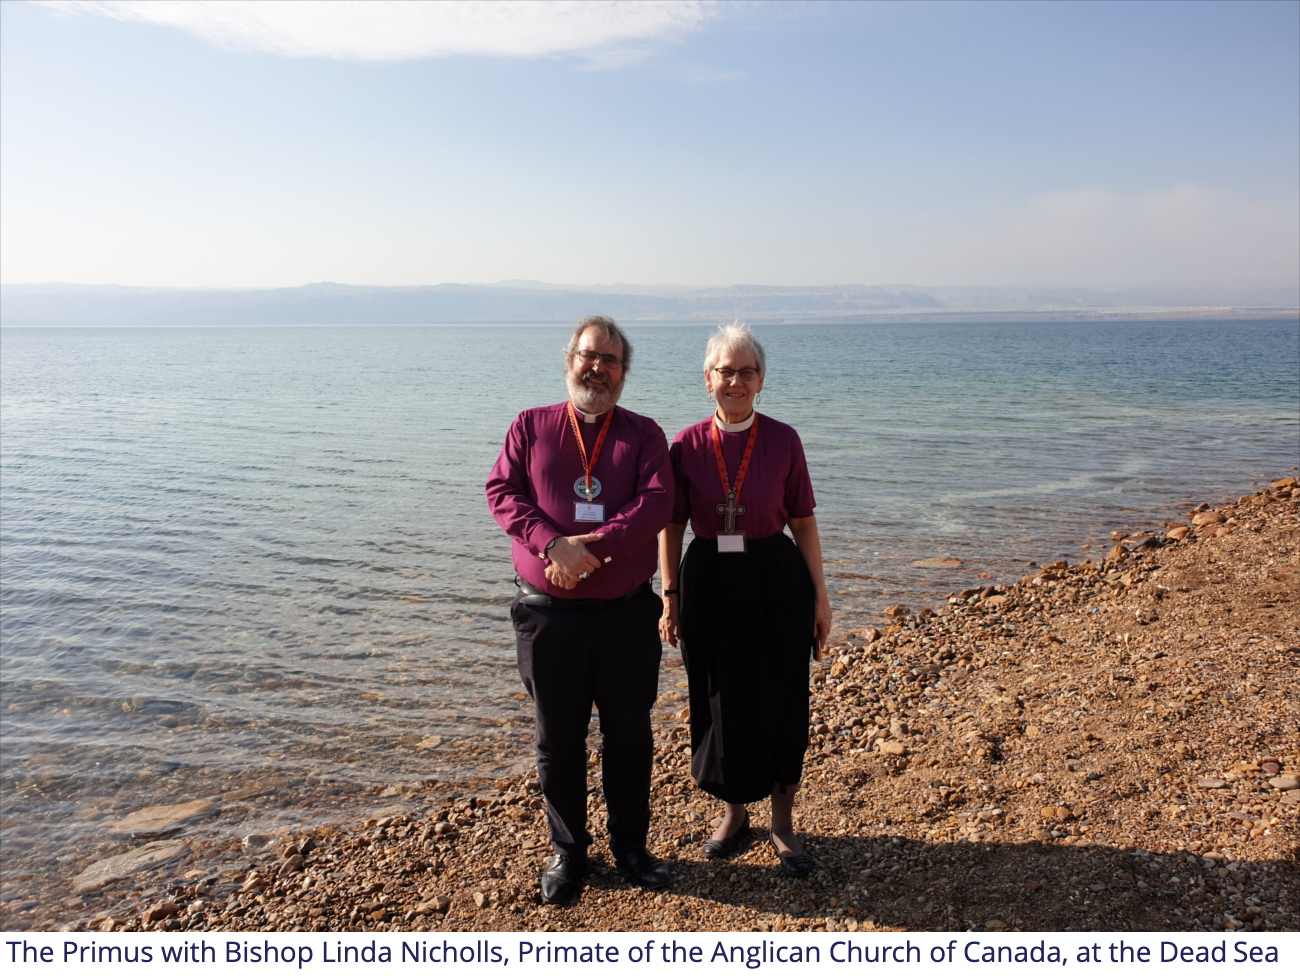 The Primus with Bishop Linda Nicholls, Primate of the Anglican Church of Canada, at the Dead Sea